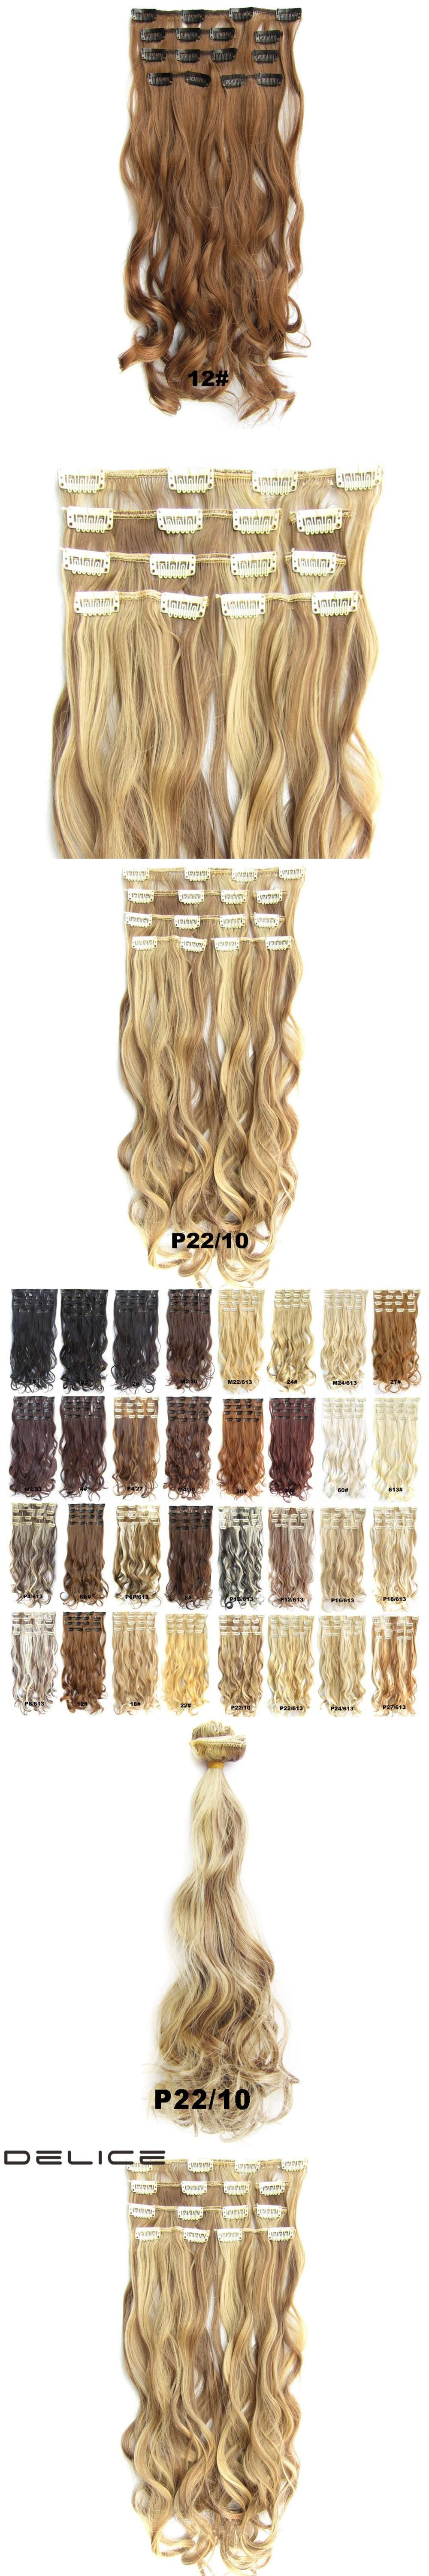 Delice 7pcsset 22inch Clip In Full Head Synthetic Curly Hair